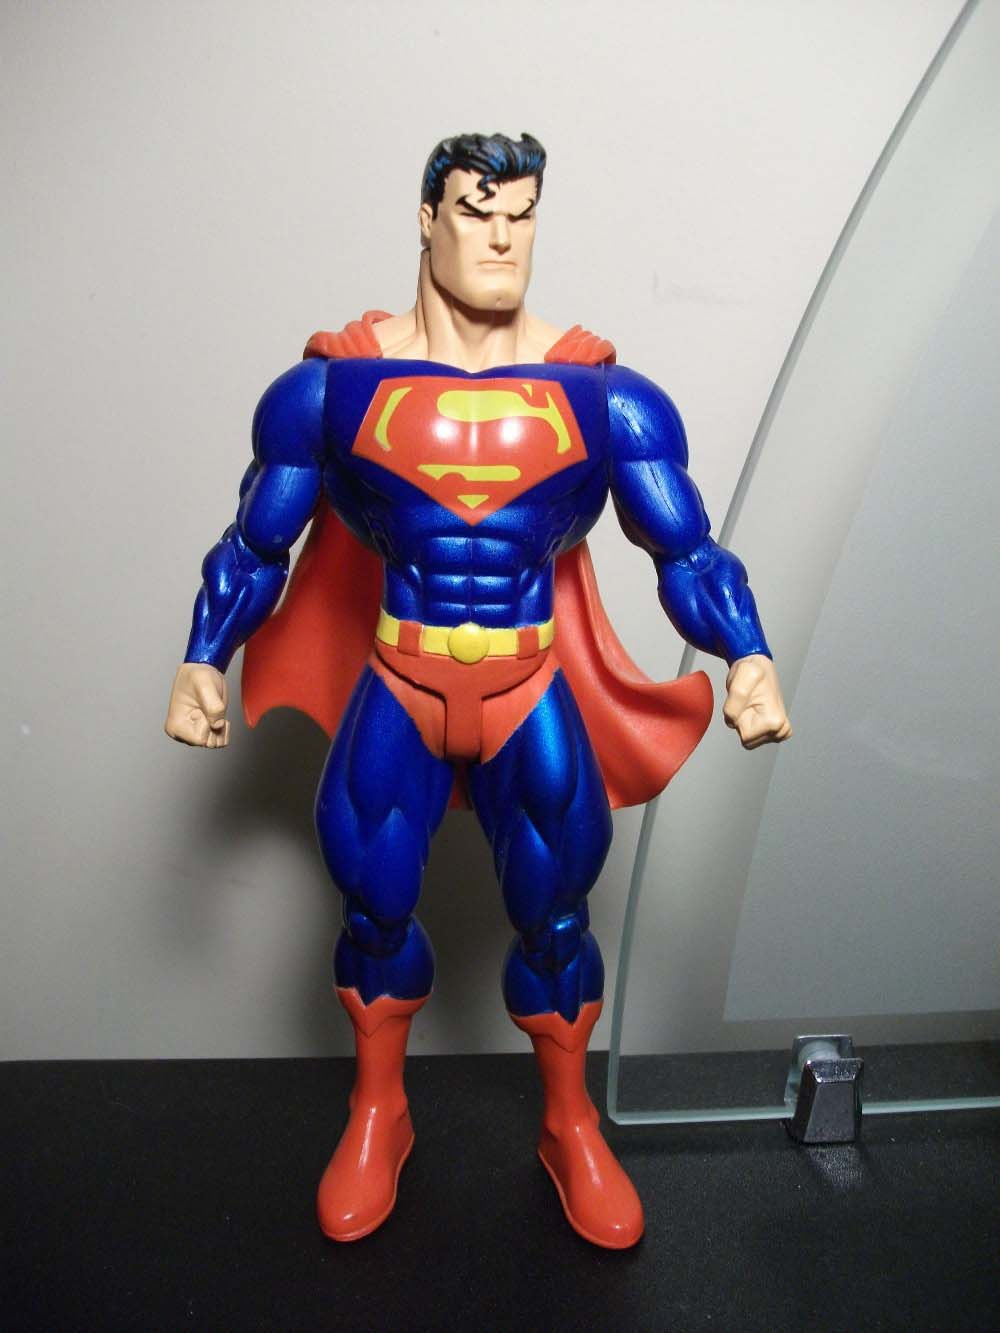 Best Superman Toys And Action Figures For Kids : What are the best superman action figures ever made